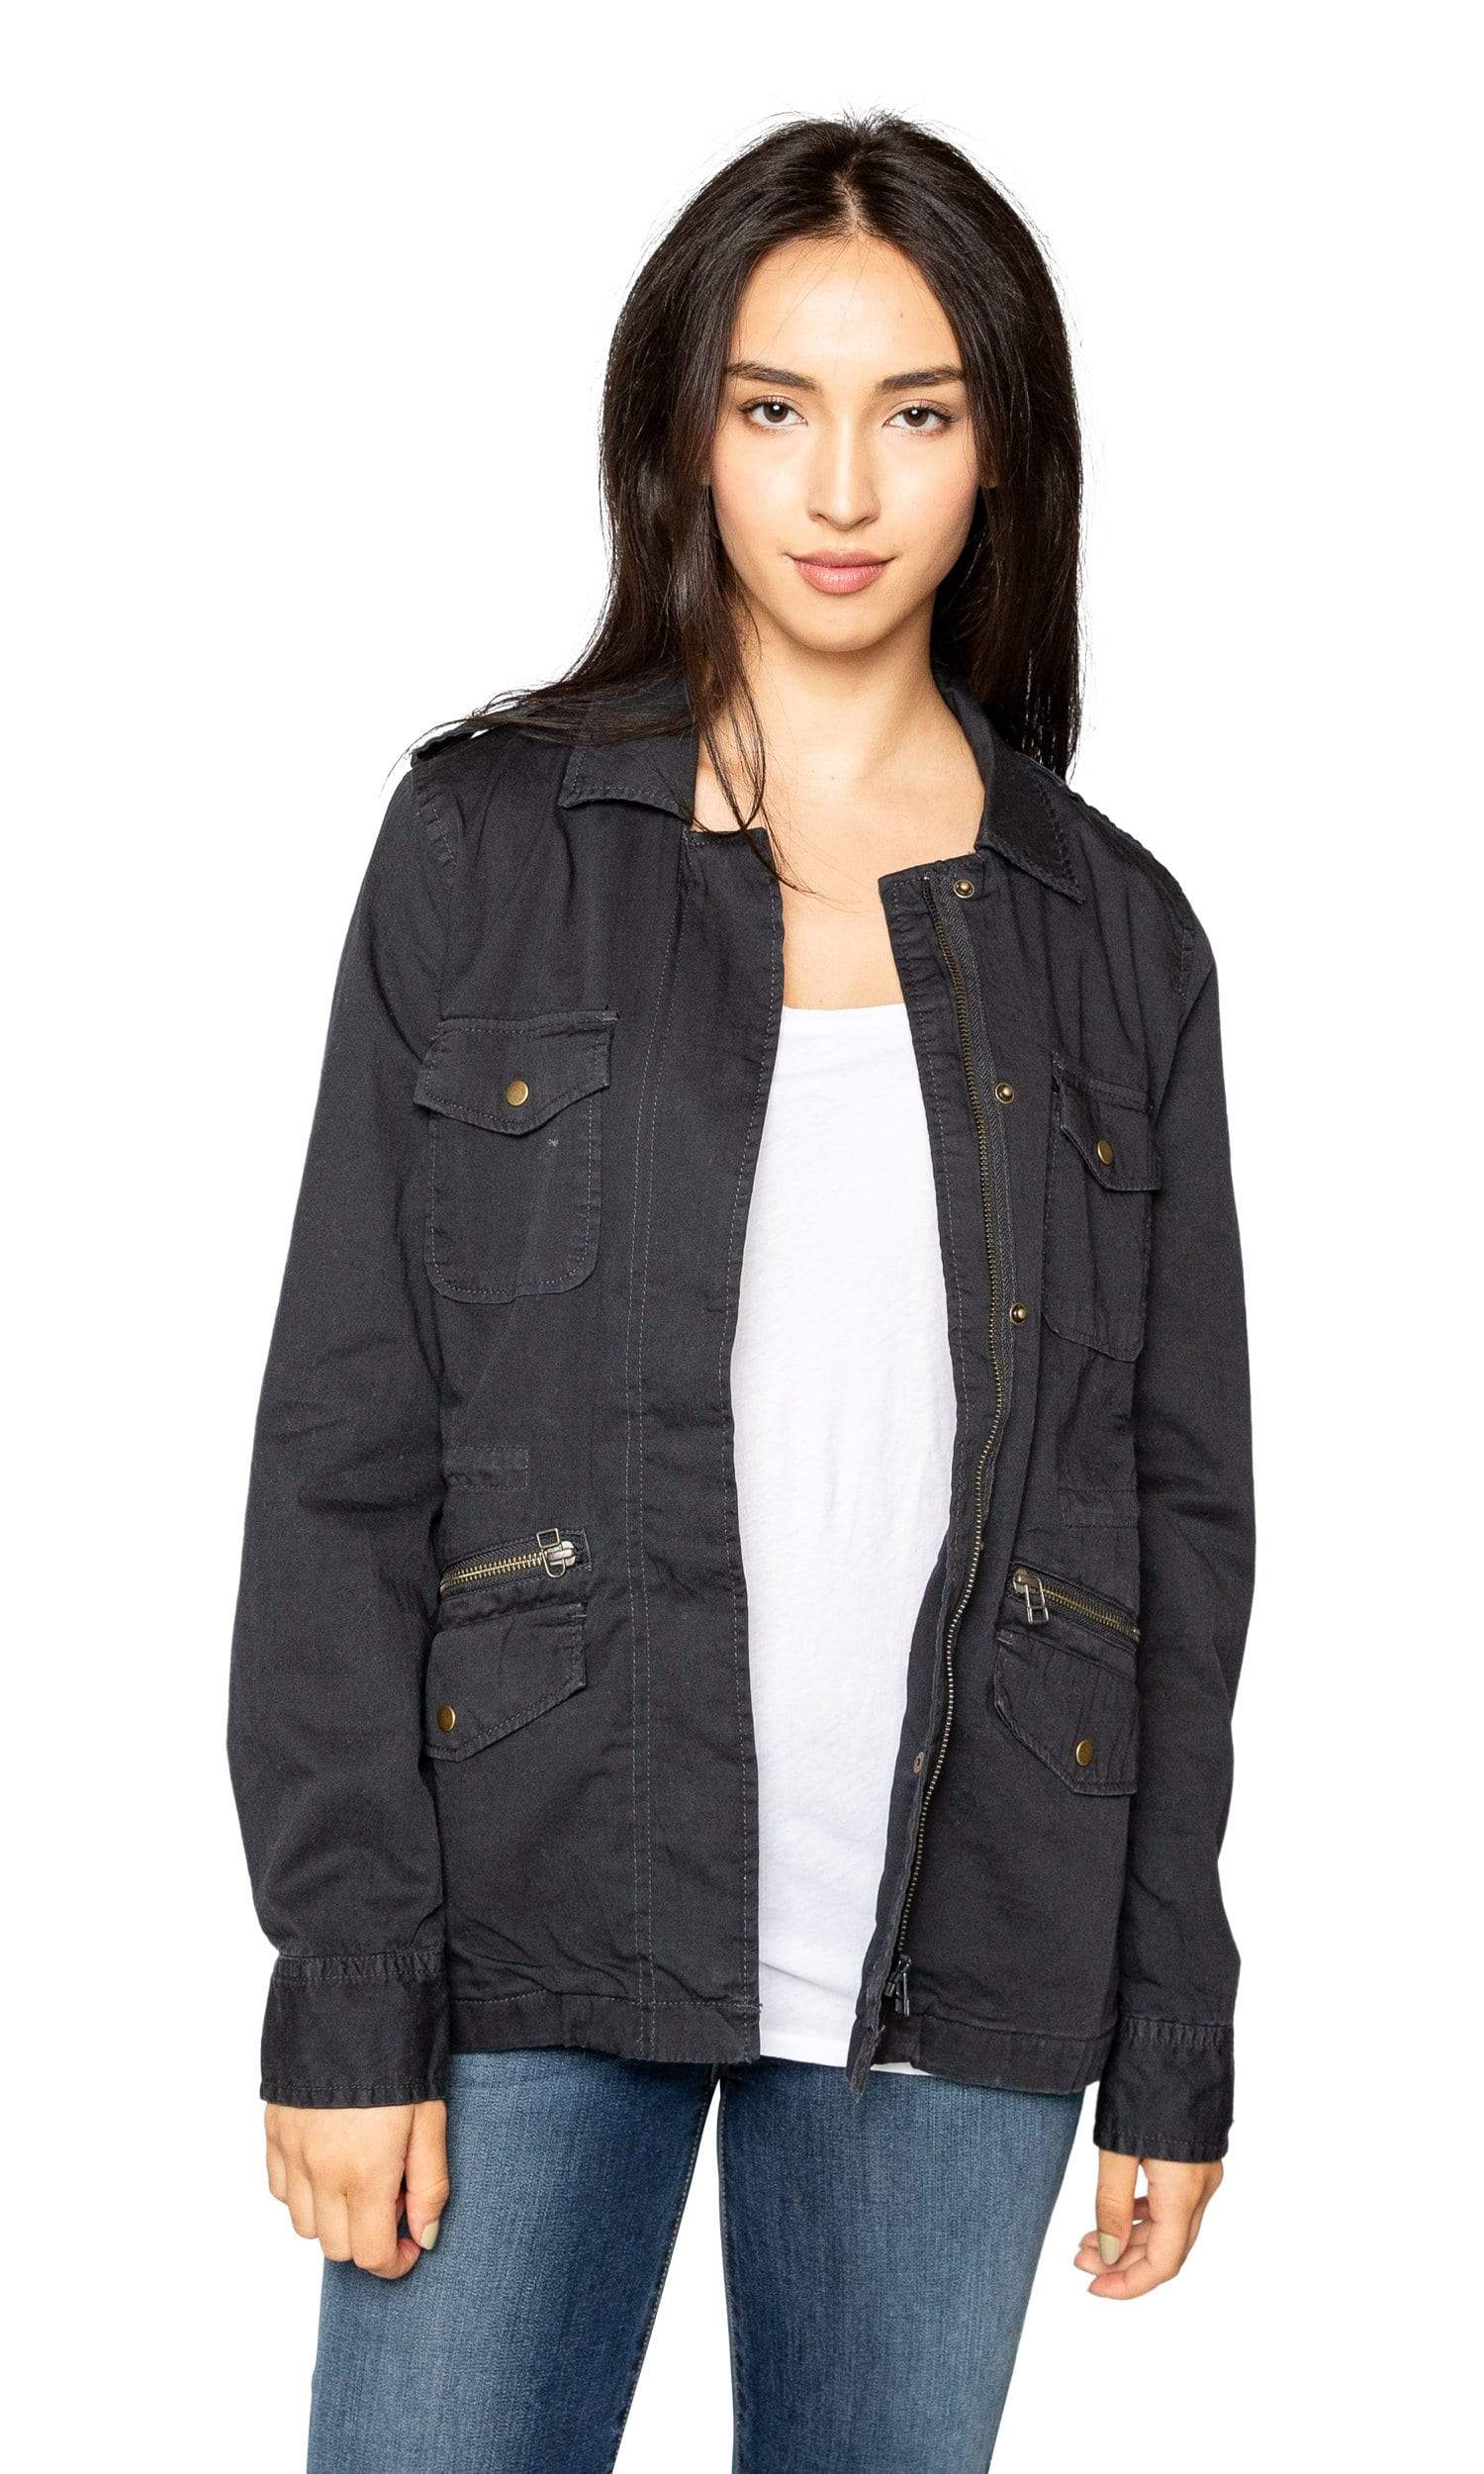 Velvet by Graham & Spencer Lily Aldridge Ruby Army Jacket - Granite